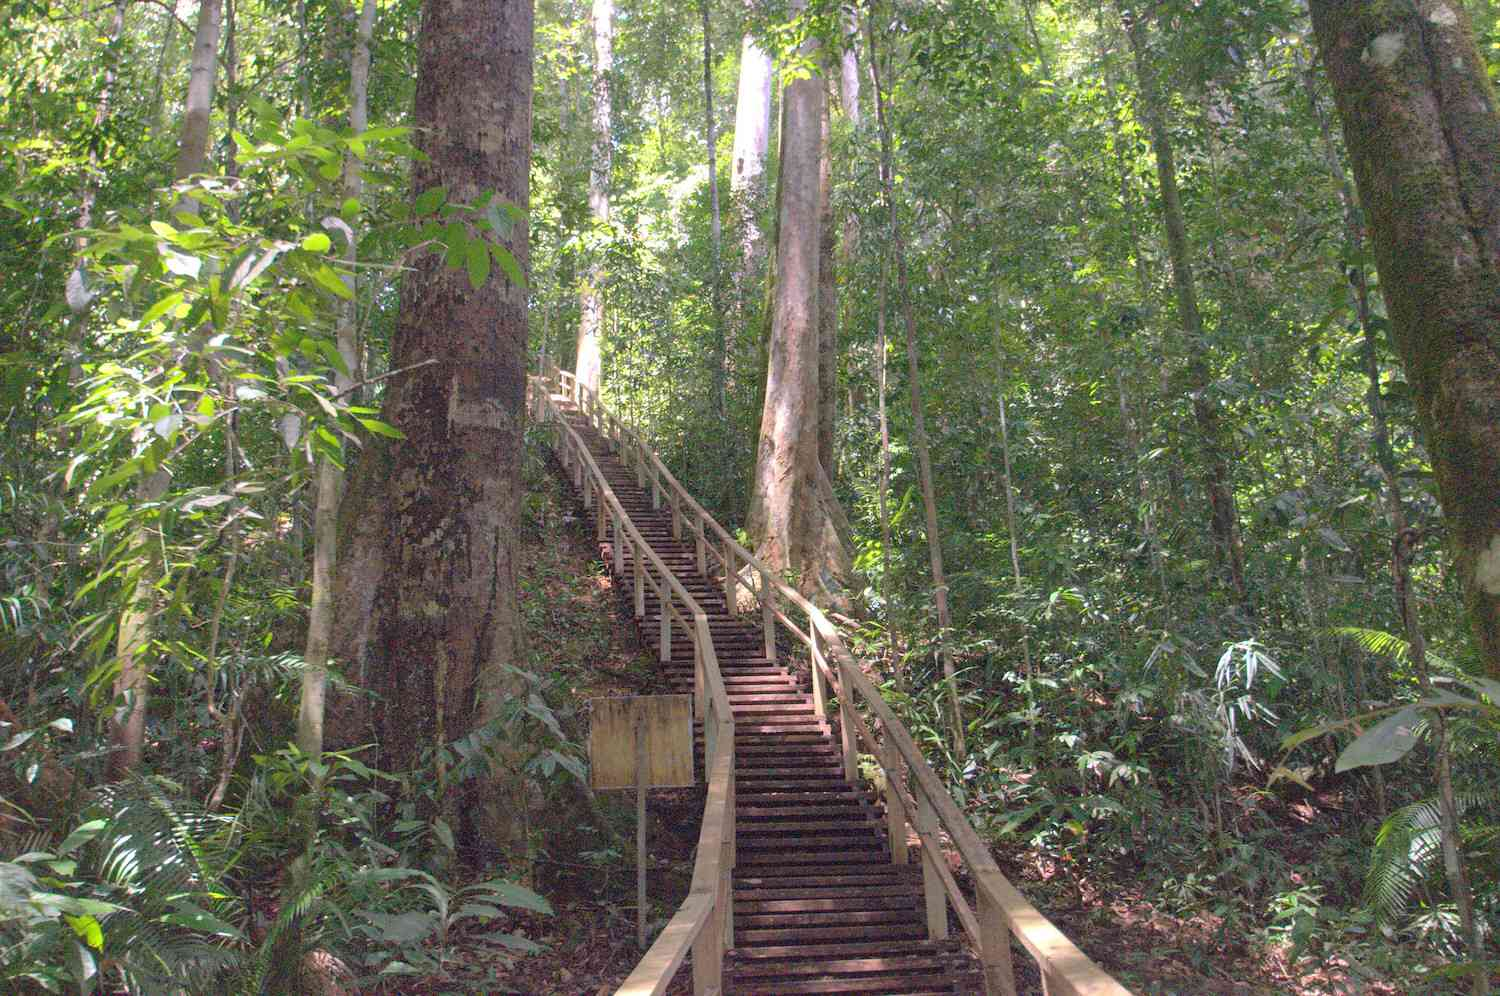 A boardwalk staircase ascends into the canopy of a tropical rainforest in Brunei